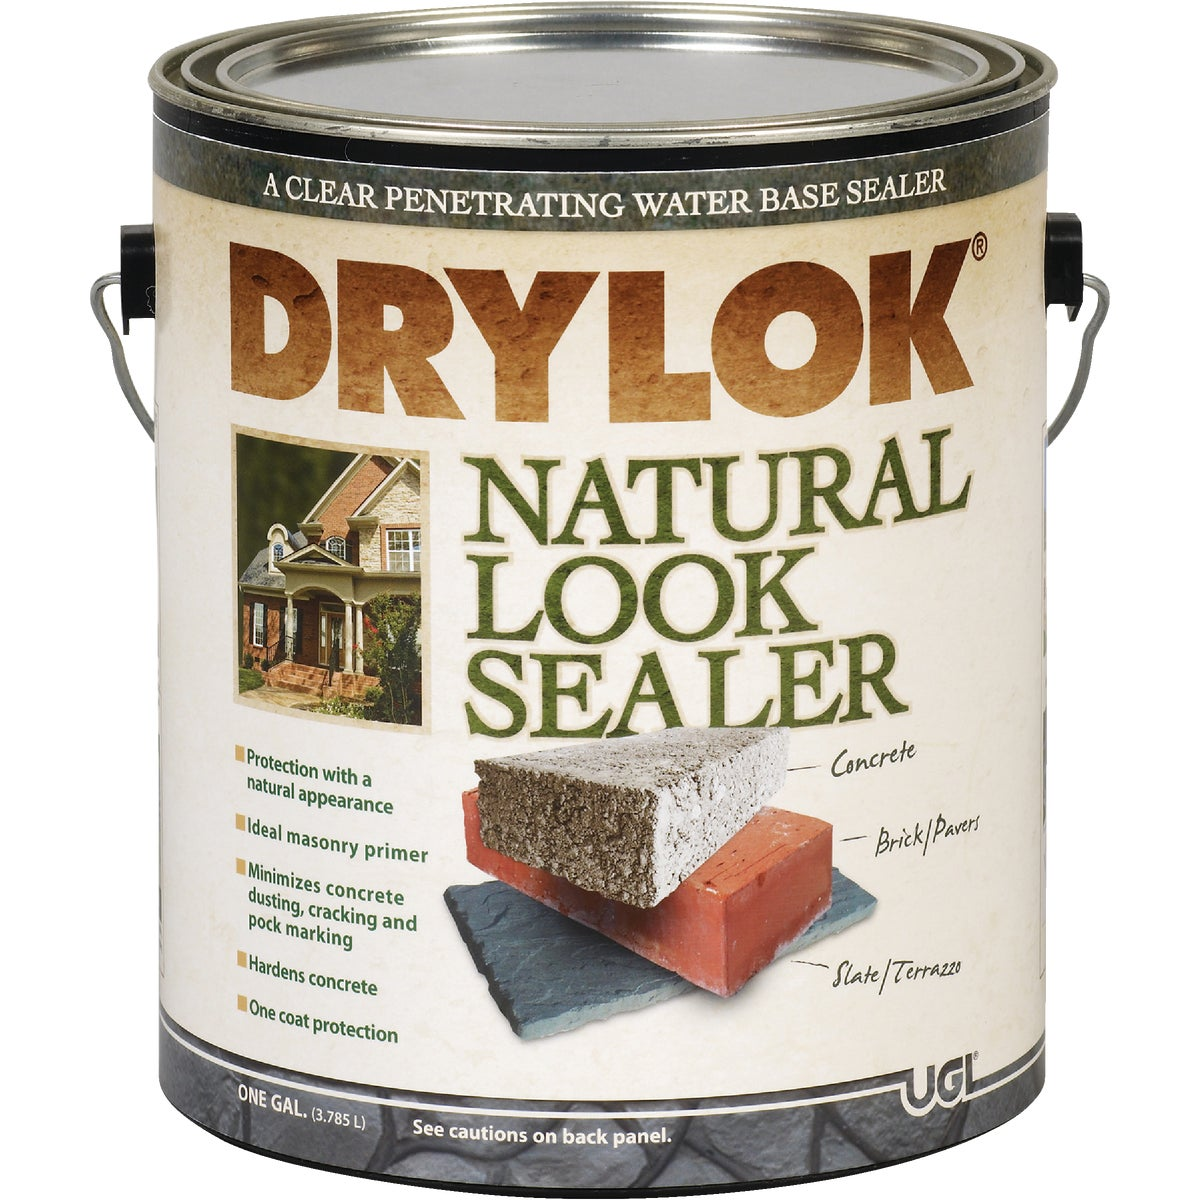 CLR NATURAL LOOK SEALER